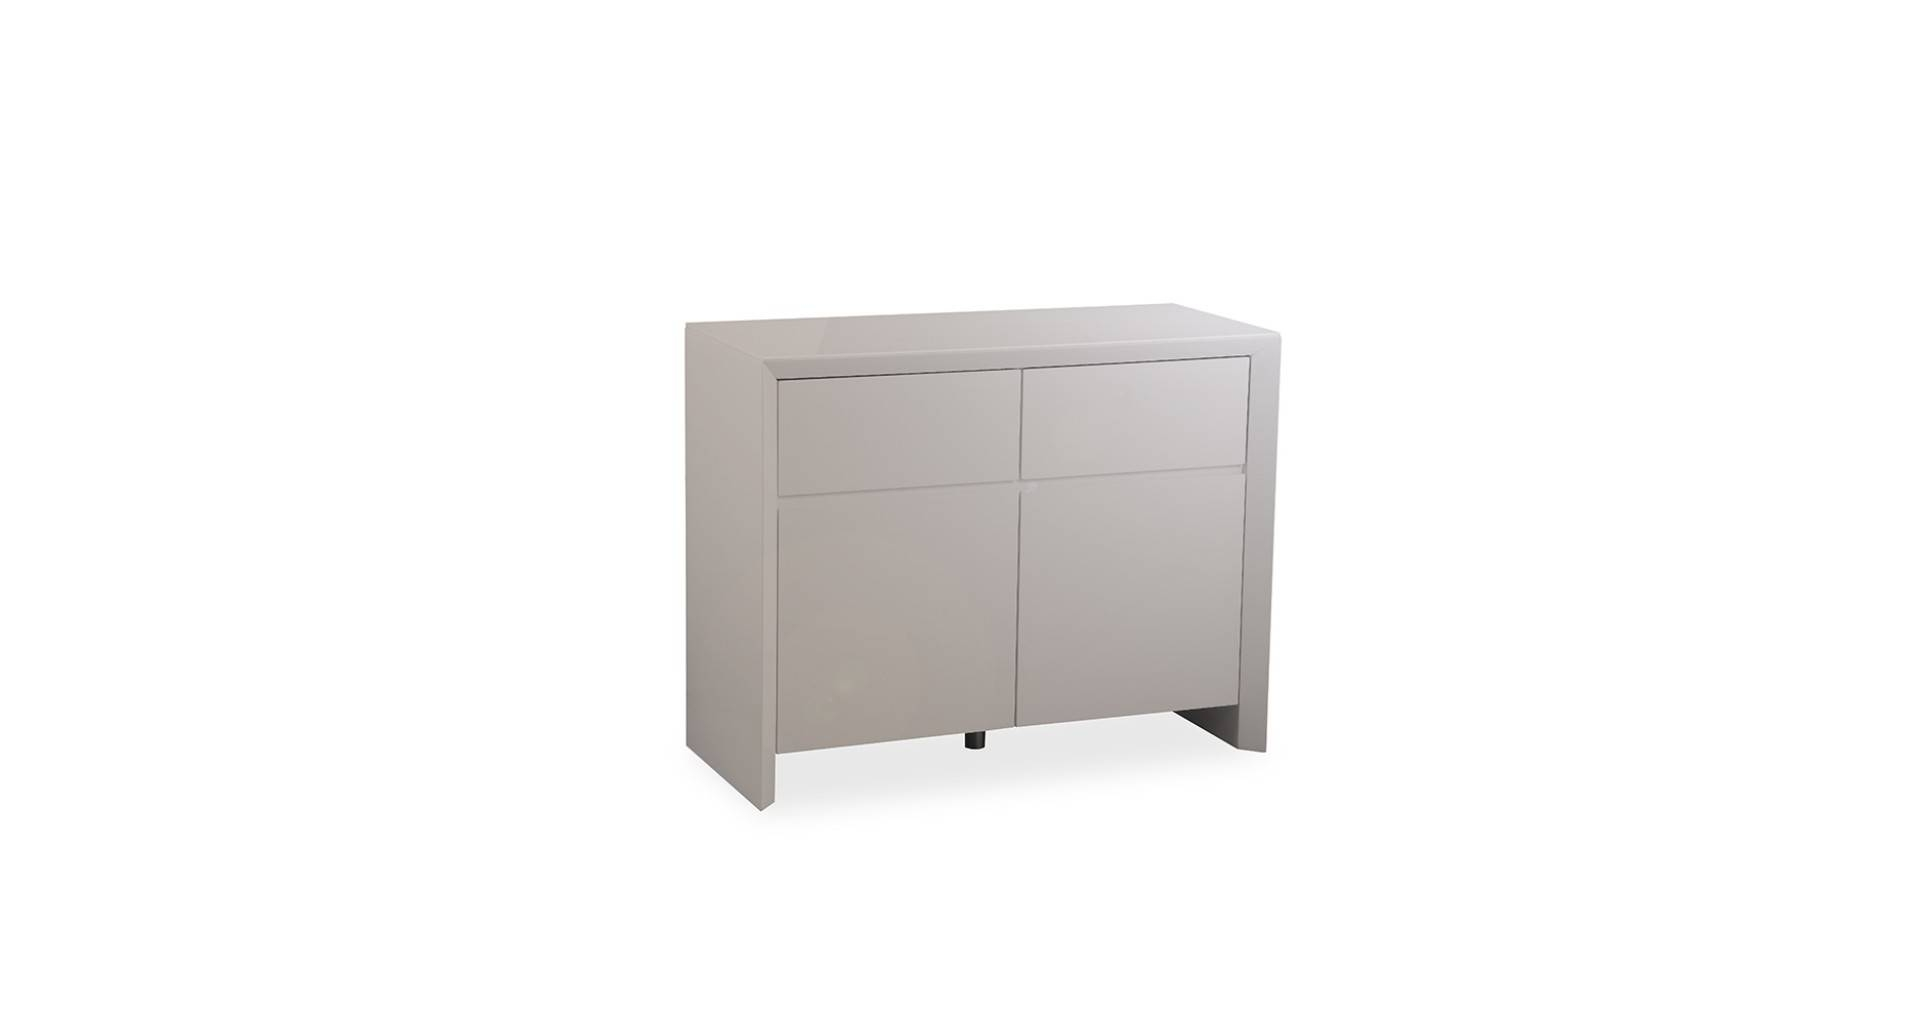 Soho - Small Sideboard - Grey High Gloss with regard to Grey Gloss Sideboards (Image 27 of 30)